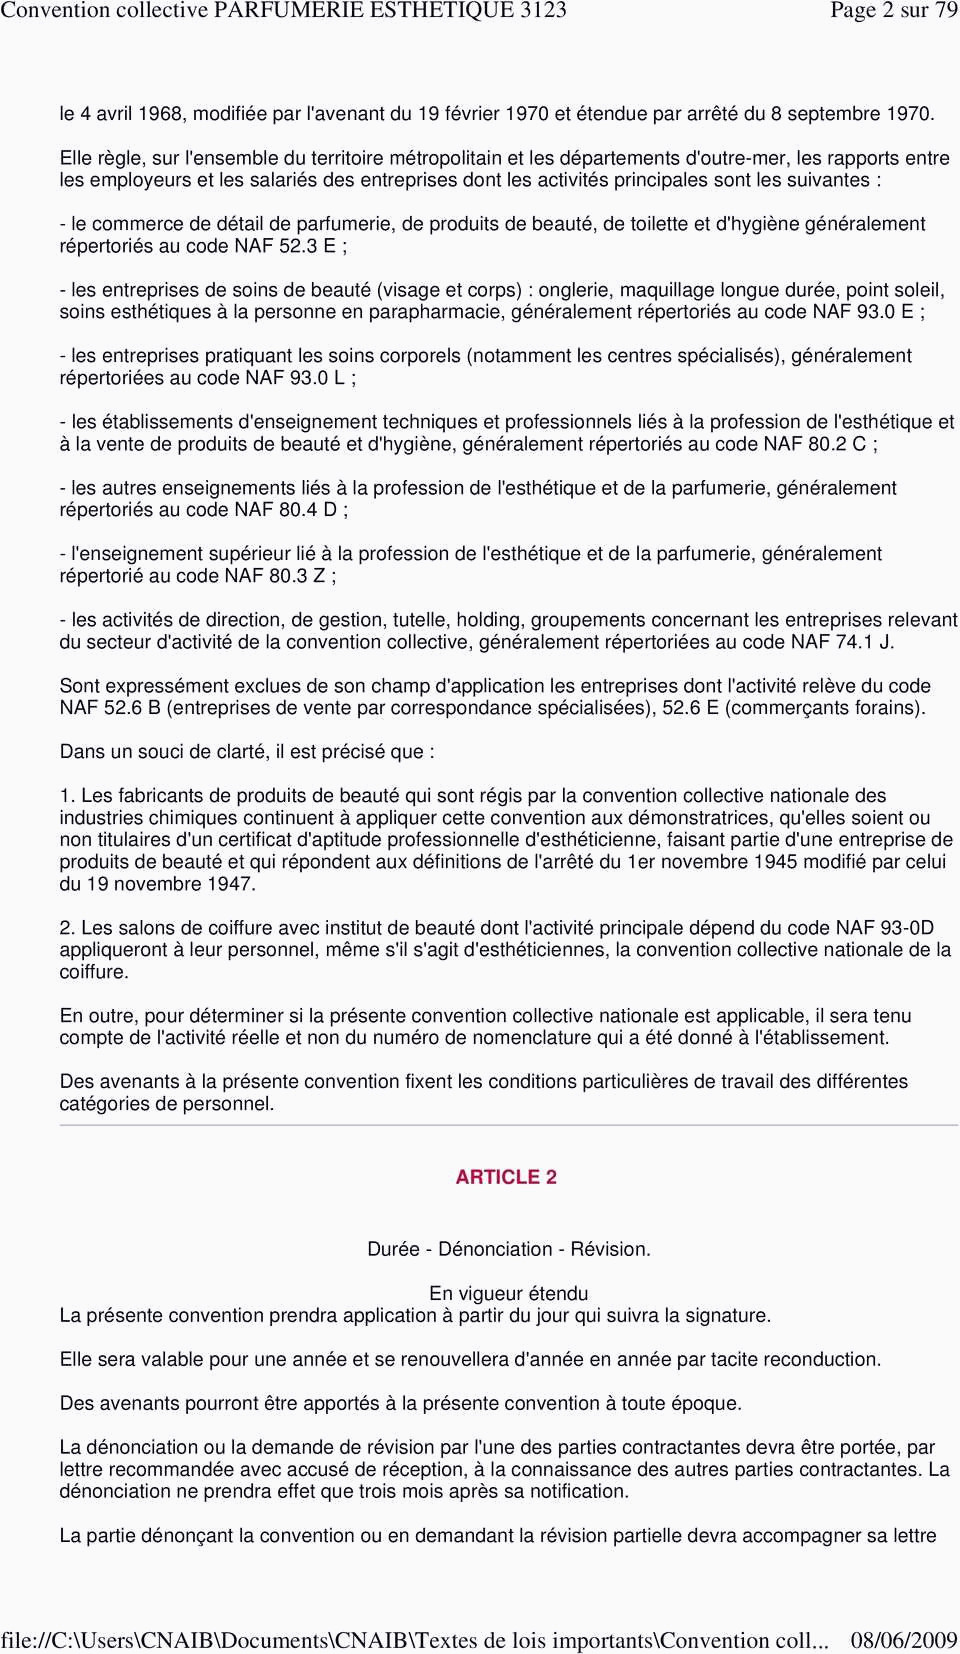 Lettre De Motivation Reconversion Professionnelle 62 Unique Image De Lettre Reconversion Professionnelle